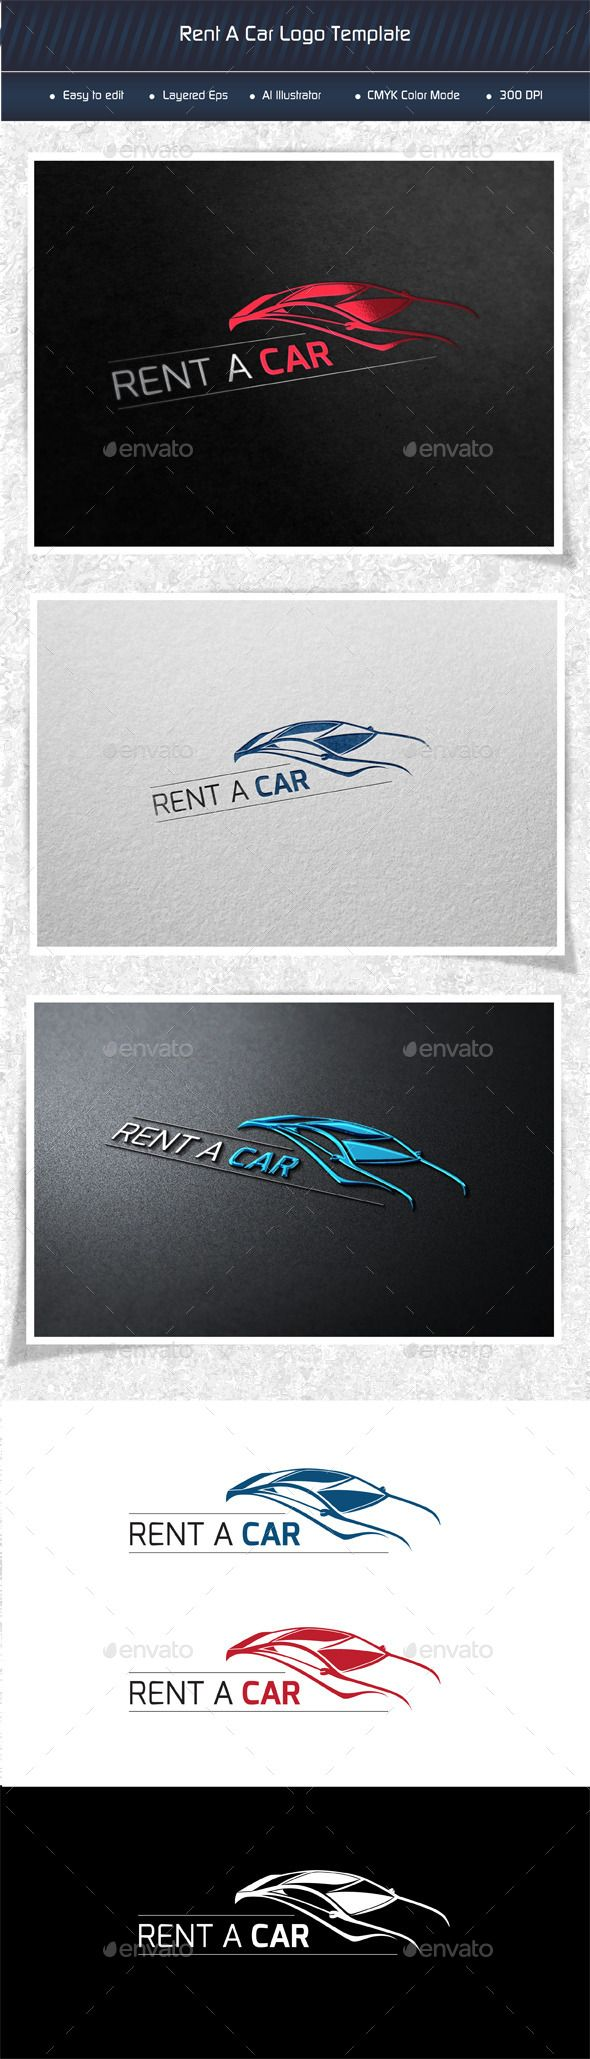 Rental Car - Logo Design Template Vector #logotype Download it here ...